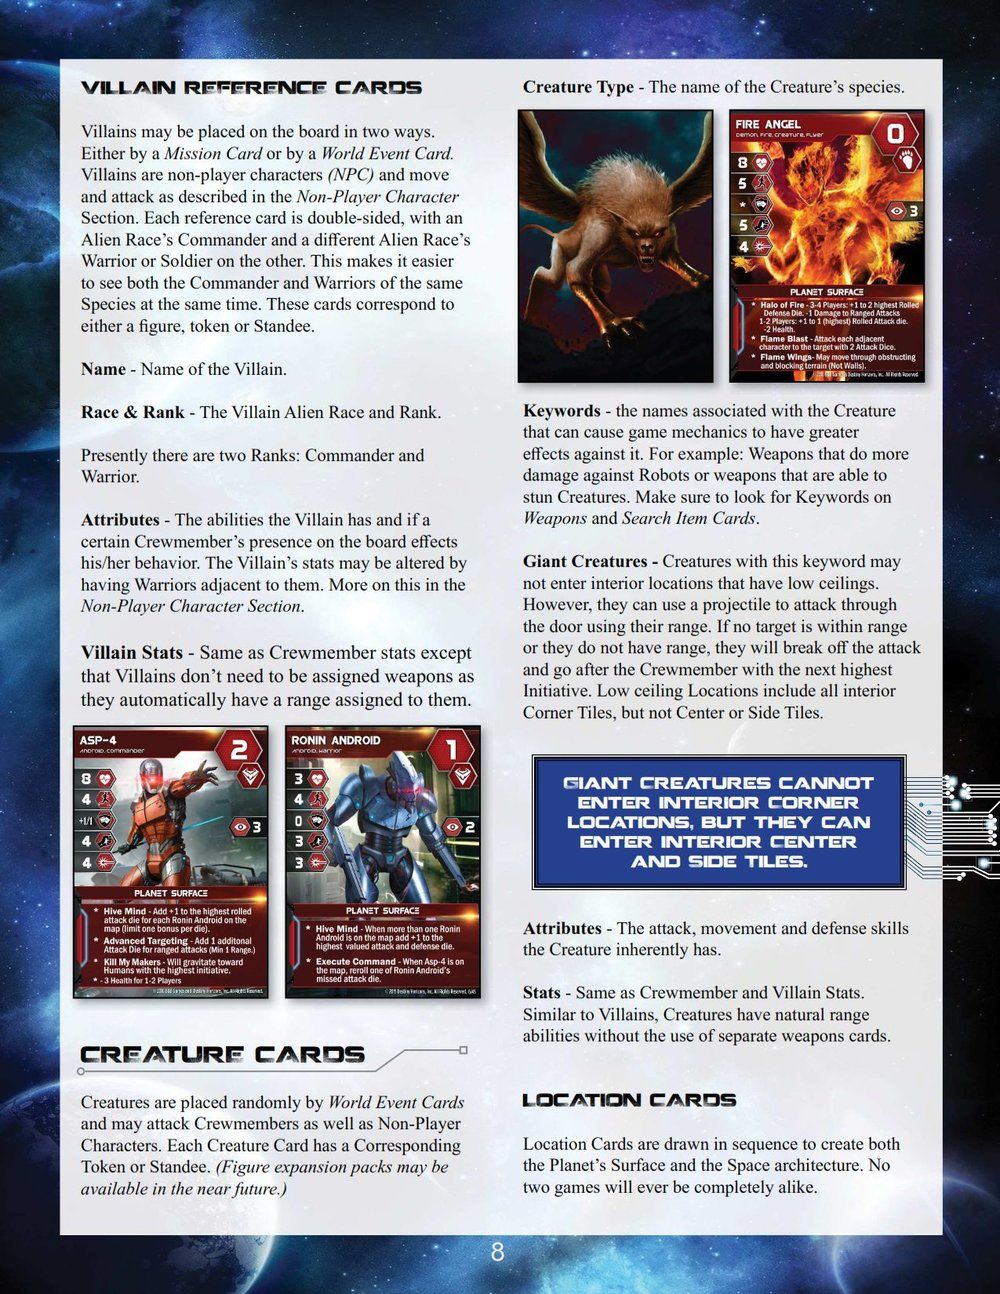 Renegades_Rule_Book_009.jpg